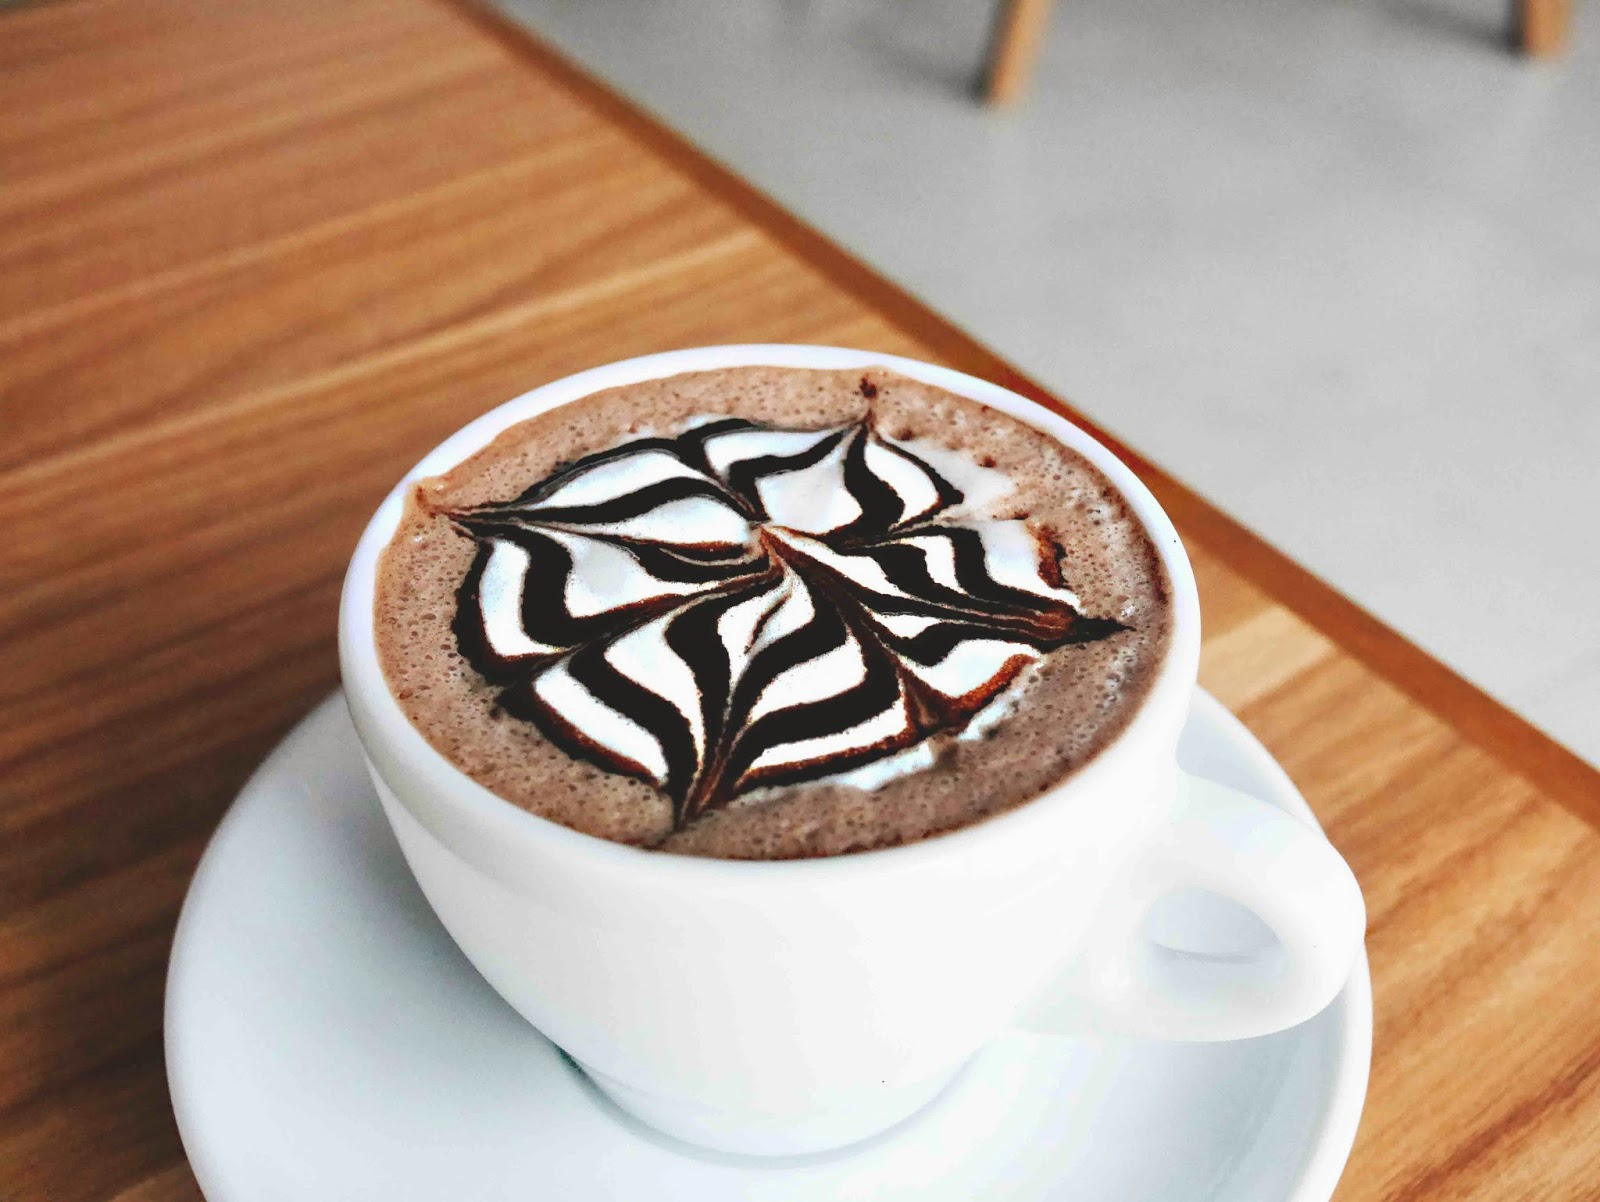 Coffee Art With Chocolate Syrup Lulabyspoon Indonesian Food Blogger And Photographer